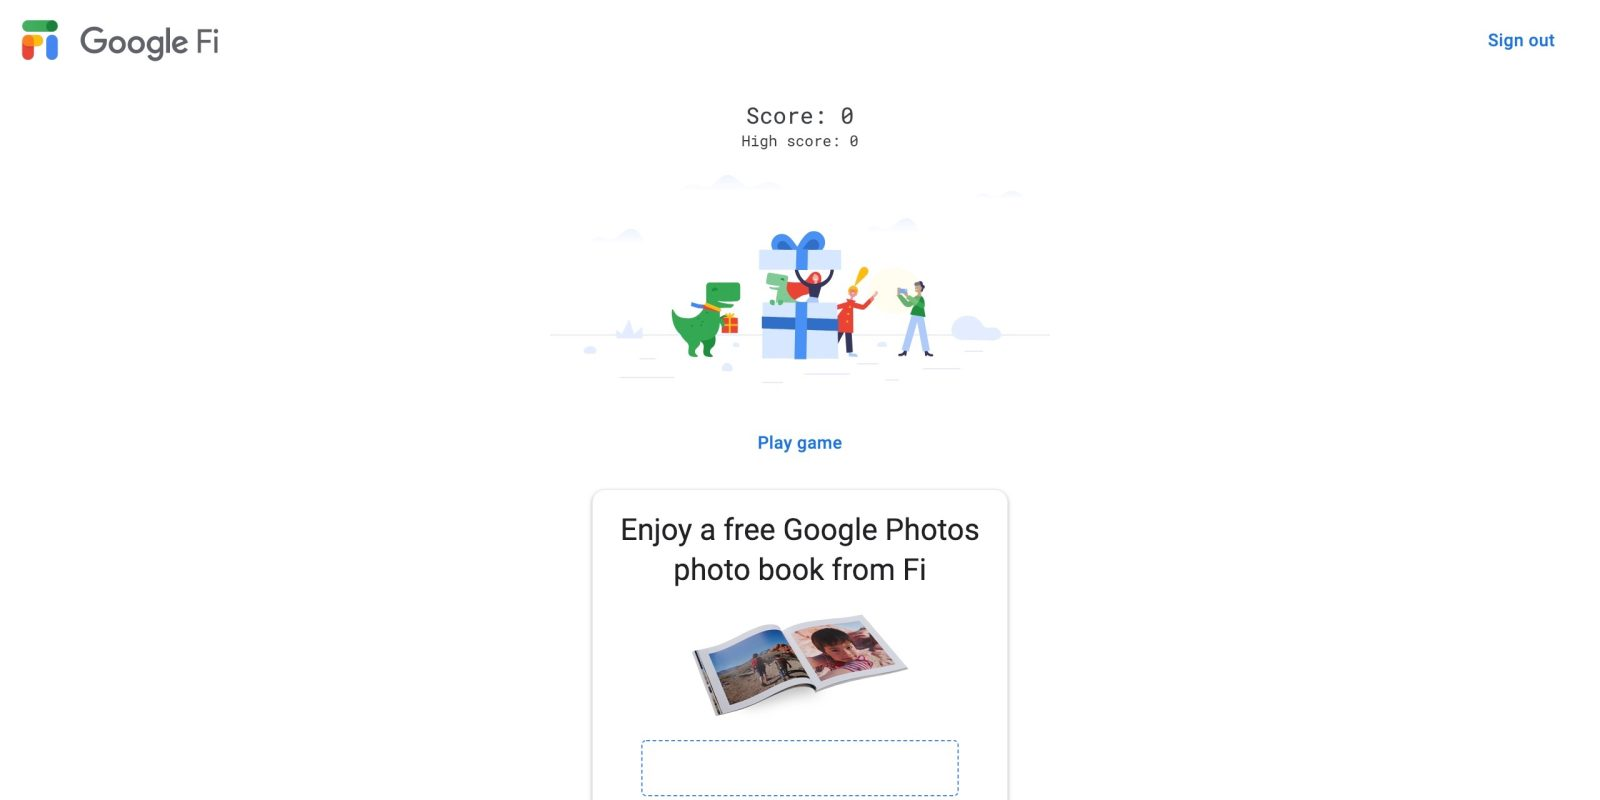 google fi gifting subscribers one free photo book from google photos